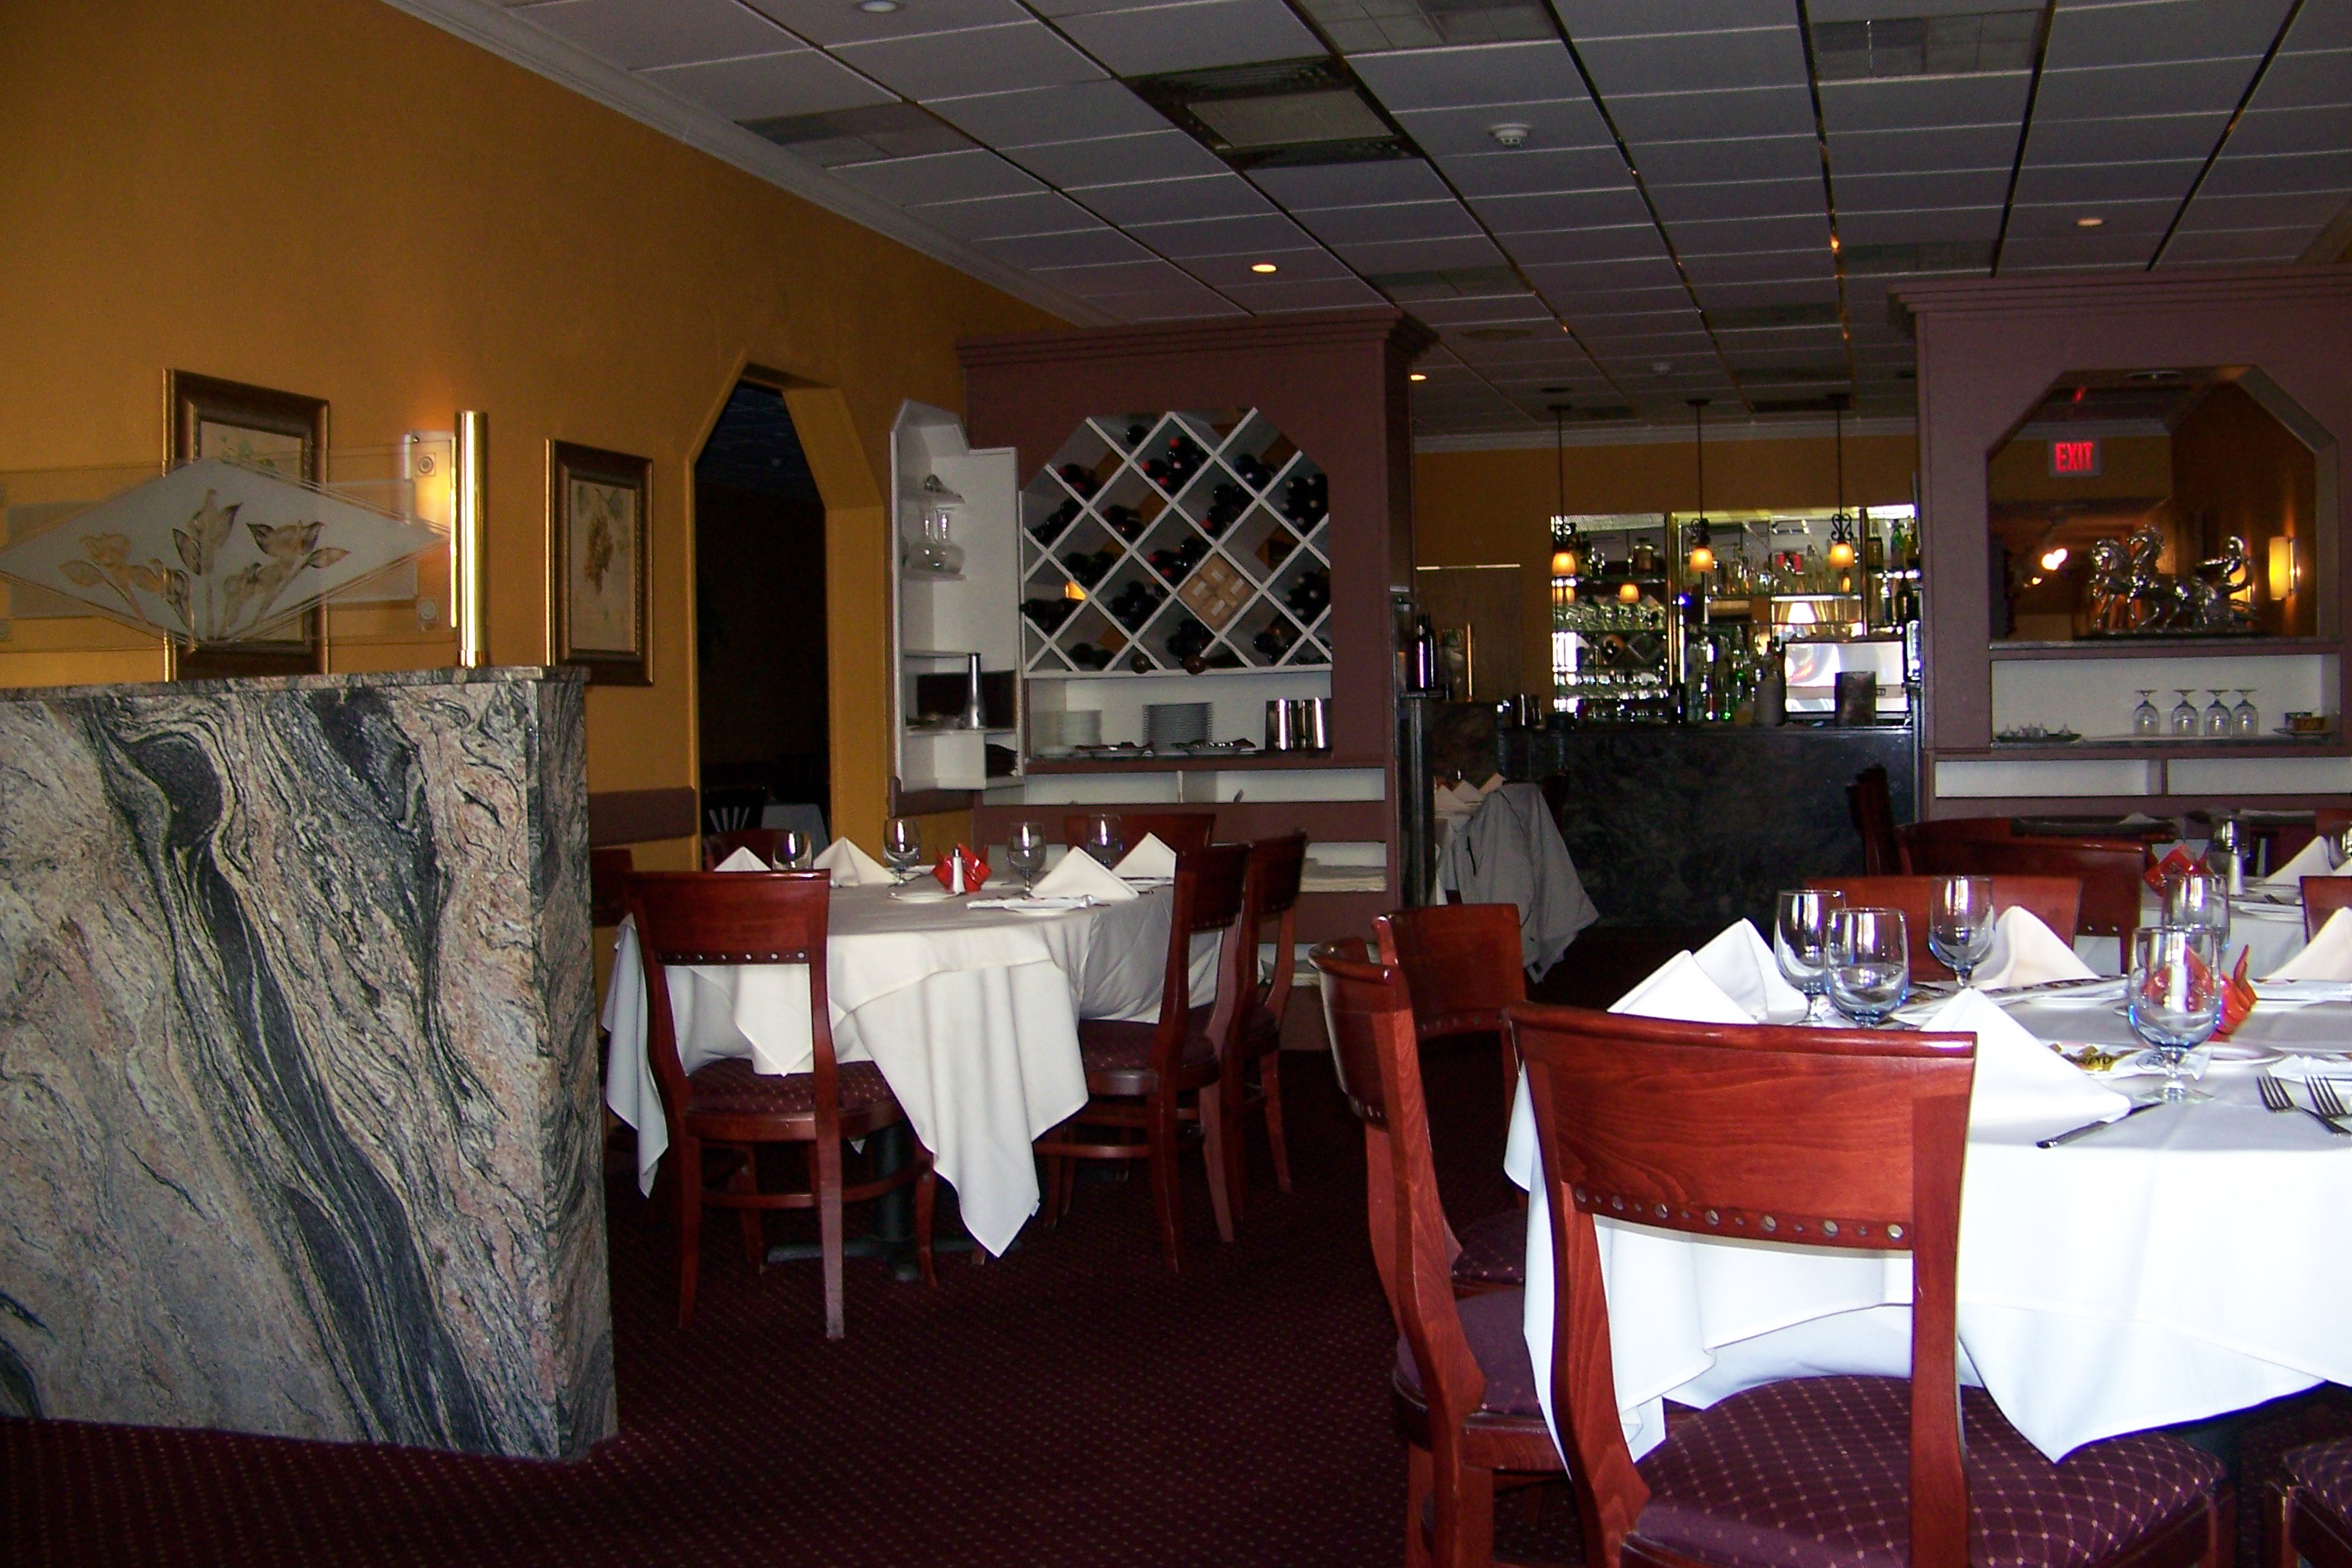 Interior of Marcello's